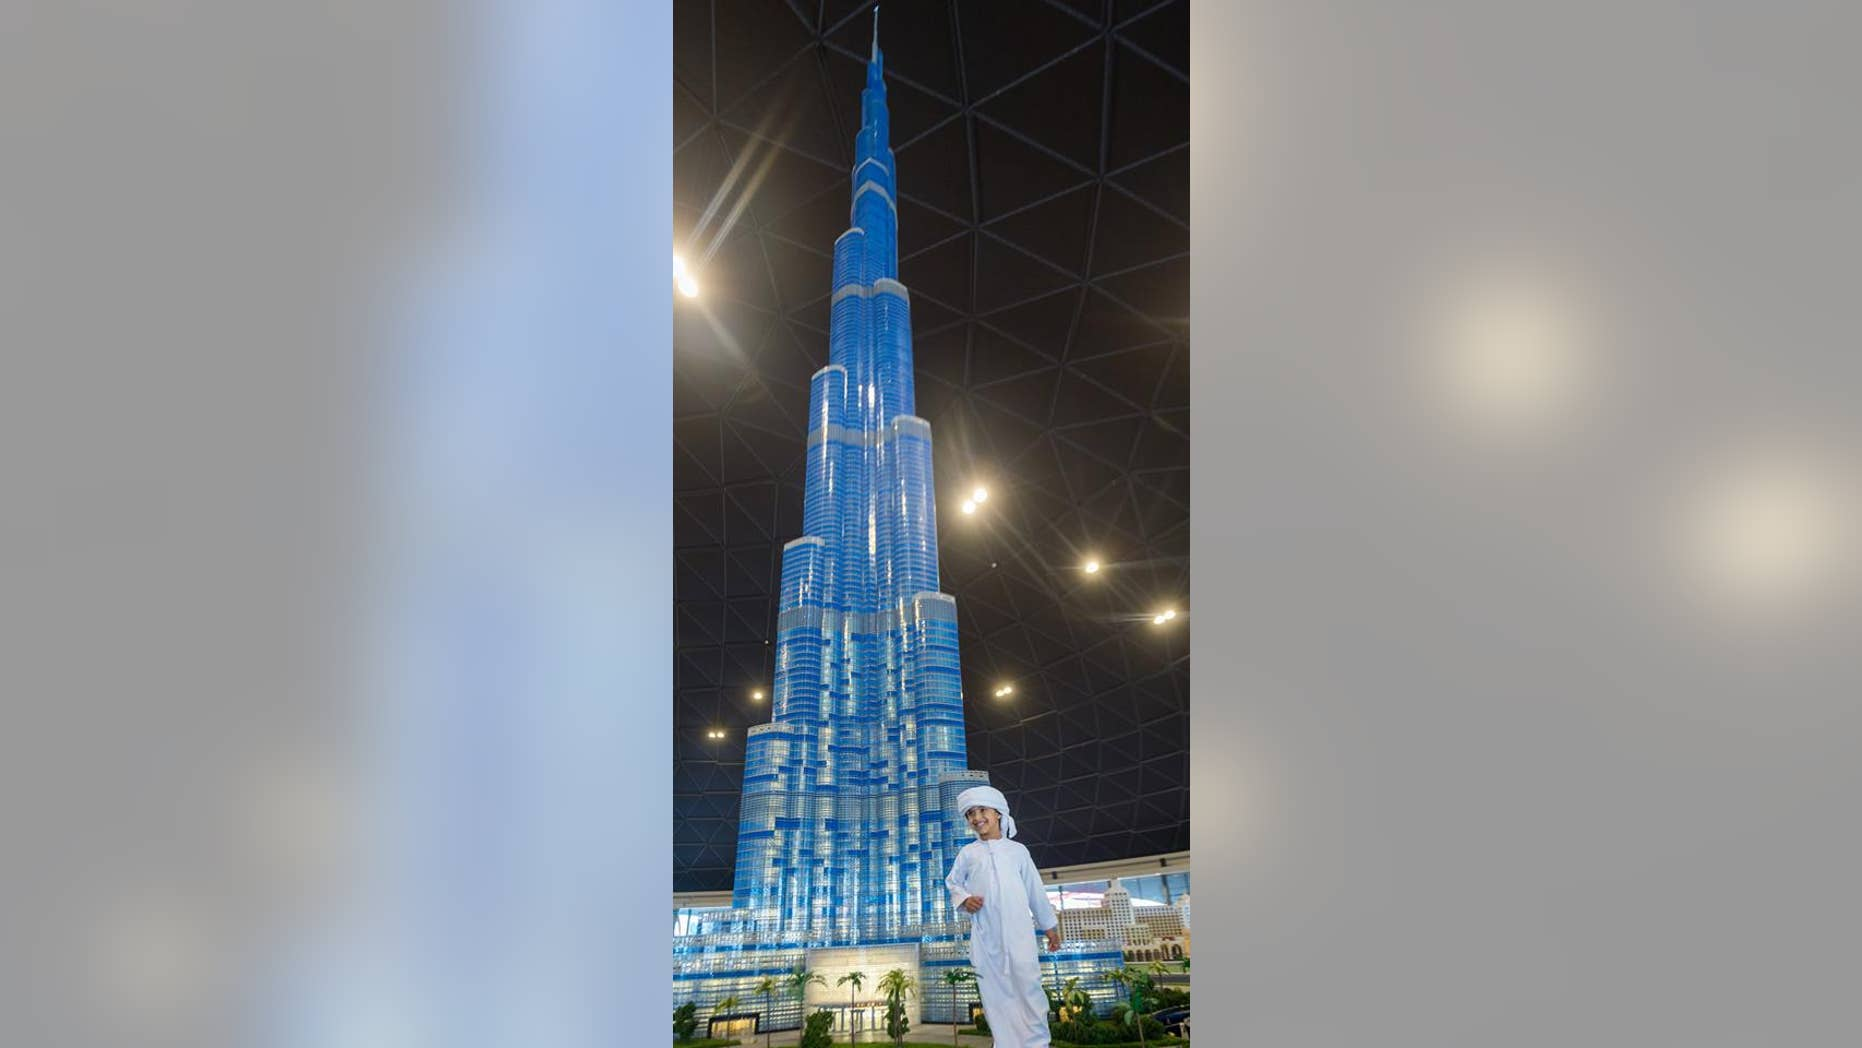 The mini Burj Khalifa is still an impressive site to behold.